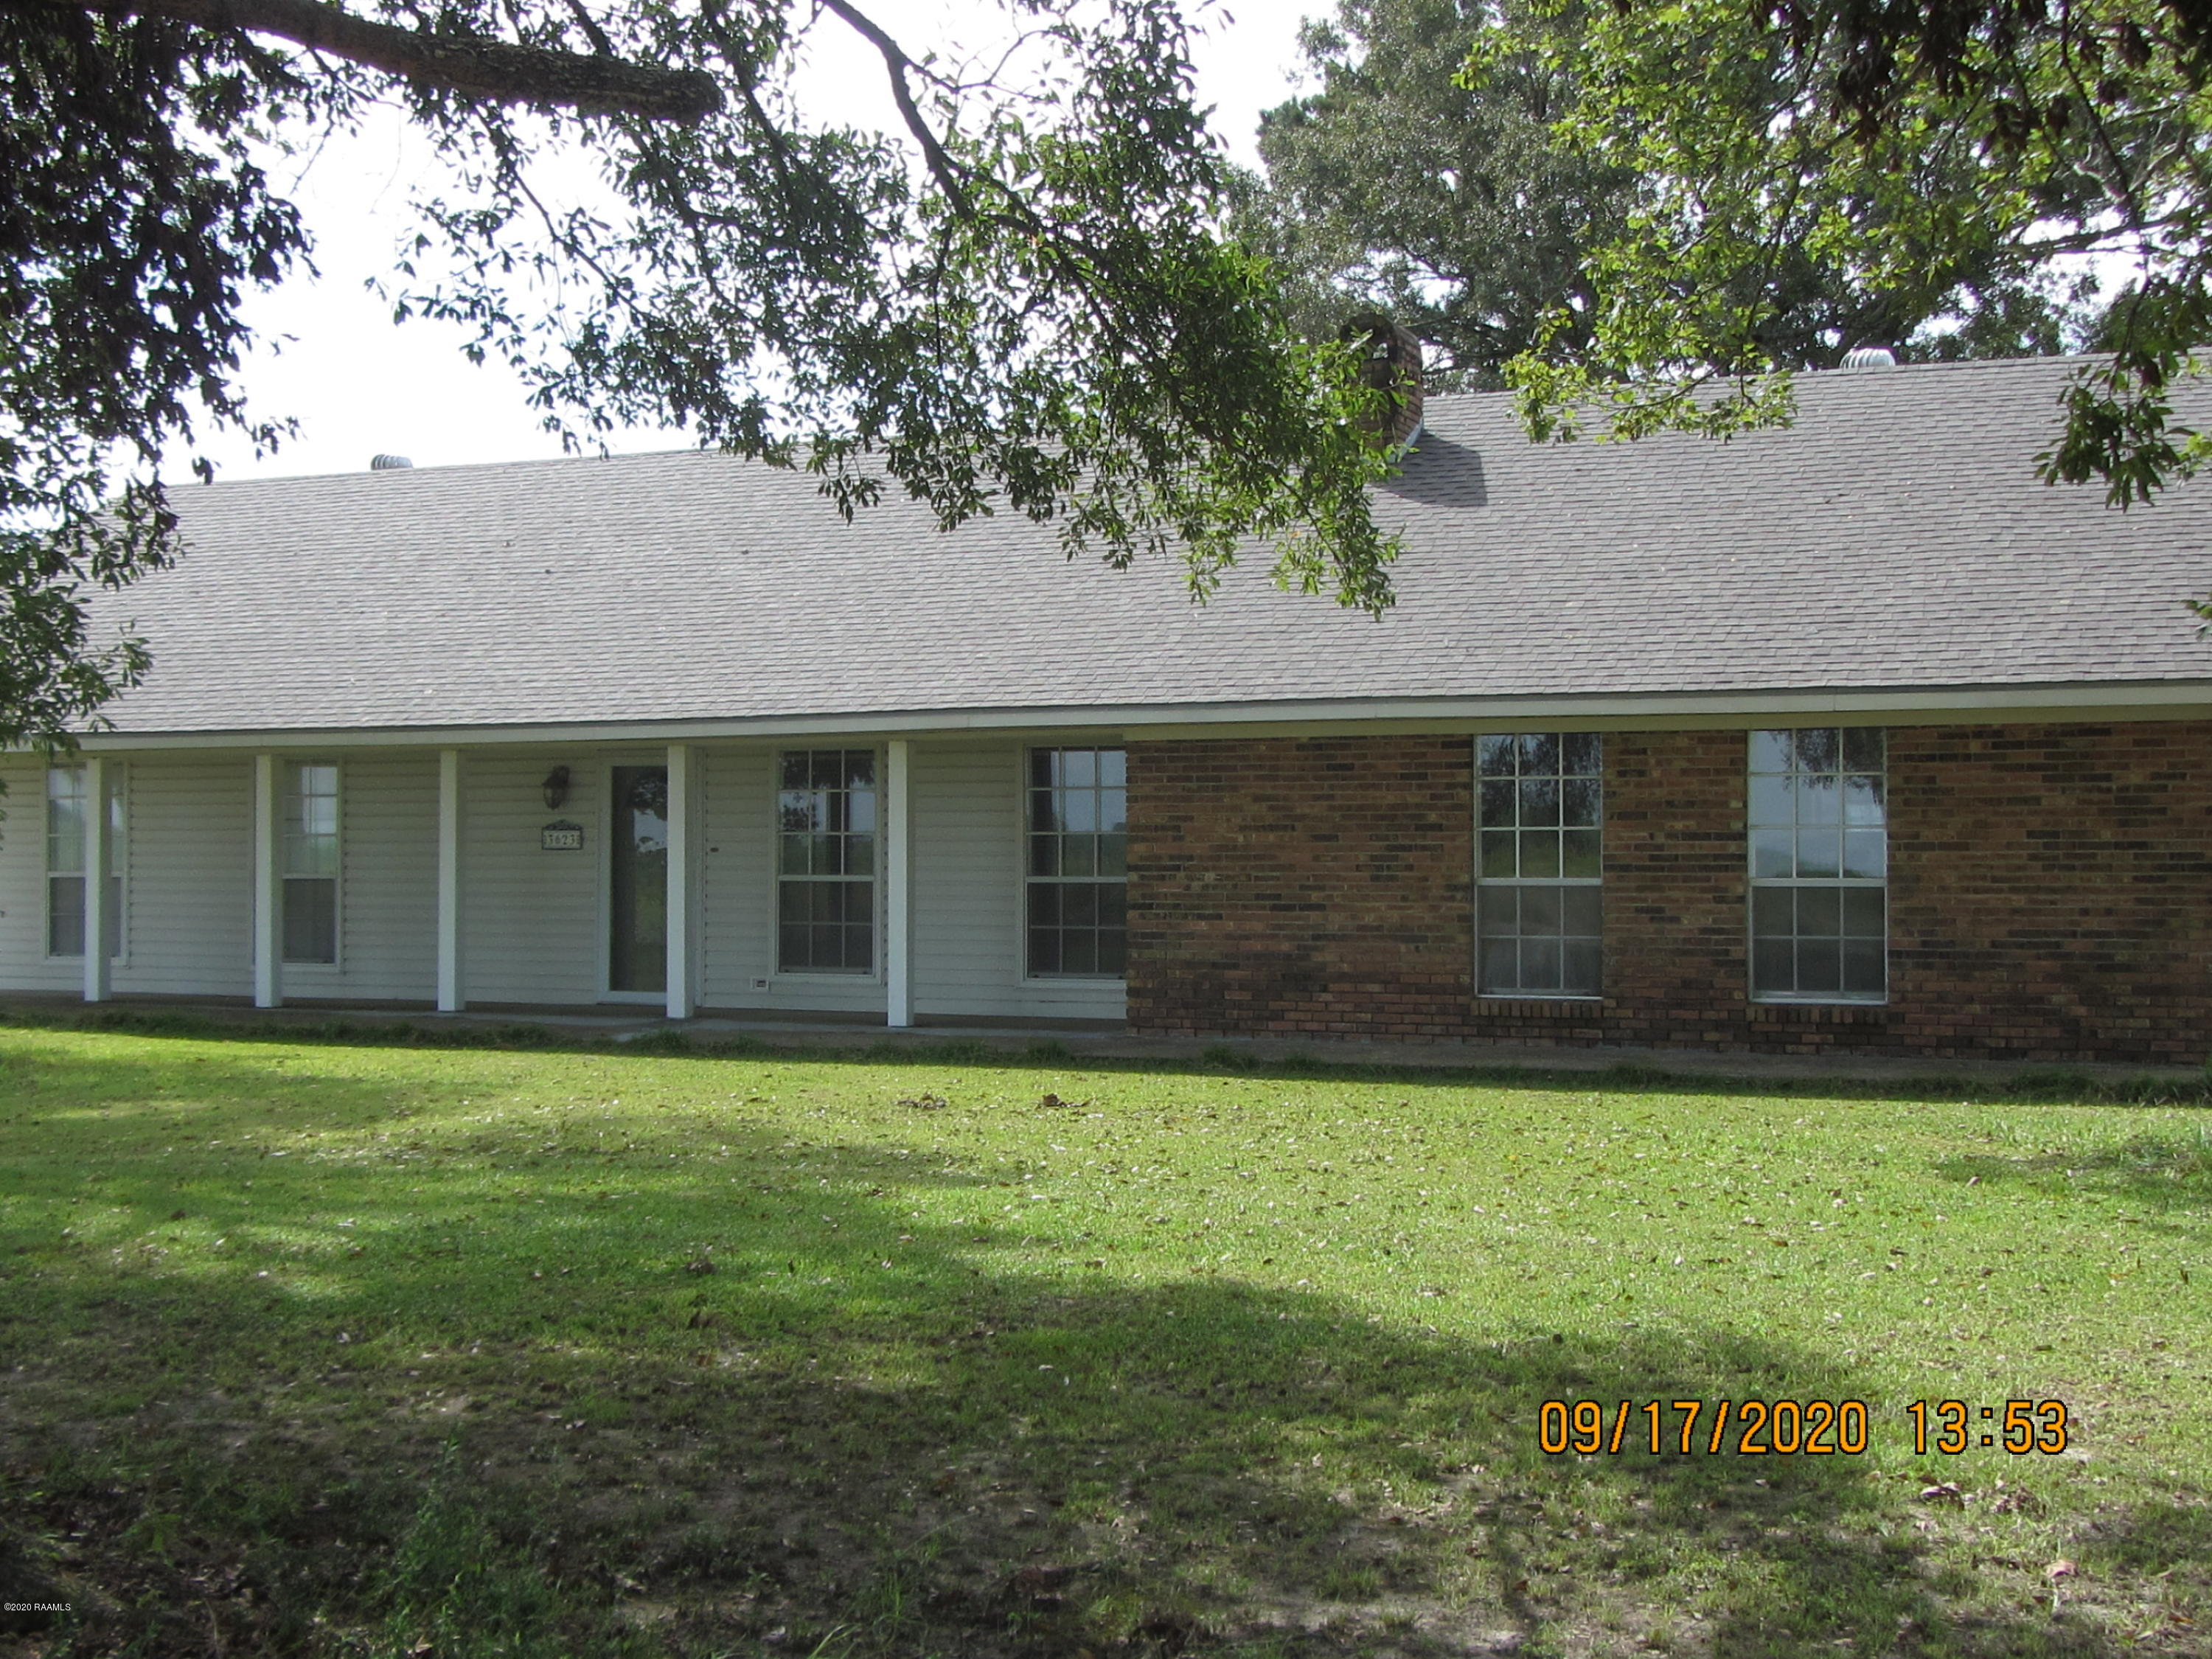 3623 Pickett Road, Erath, LA 70533 Photo #1